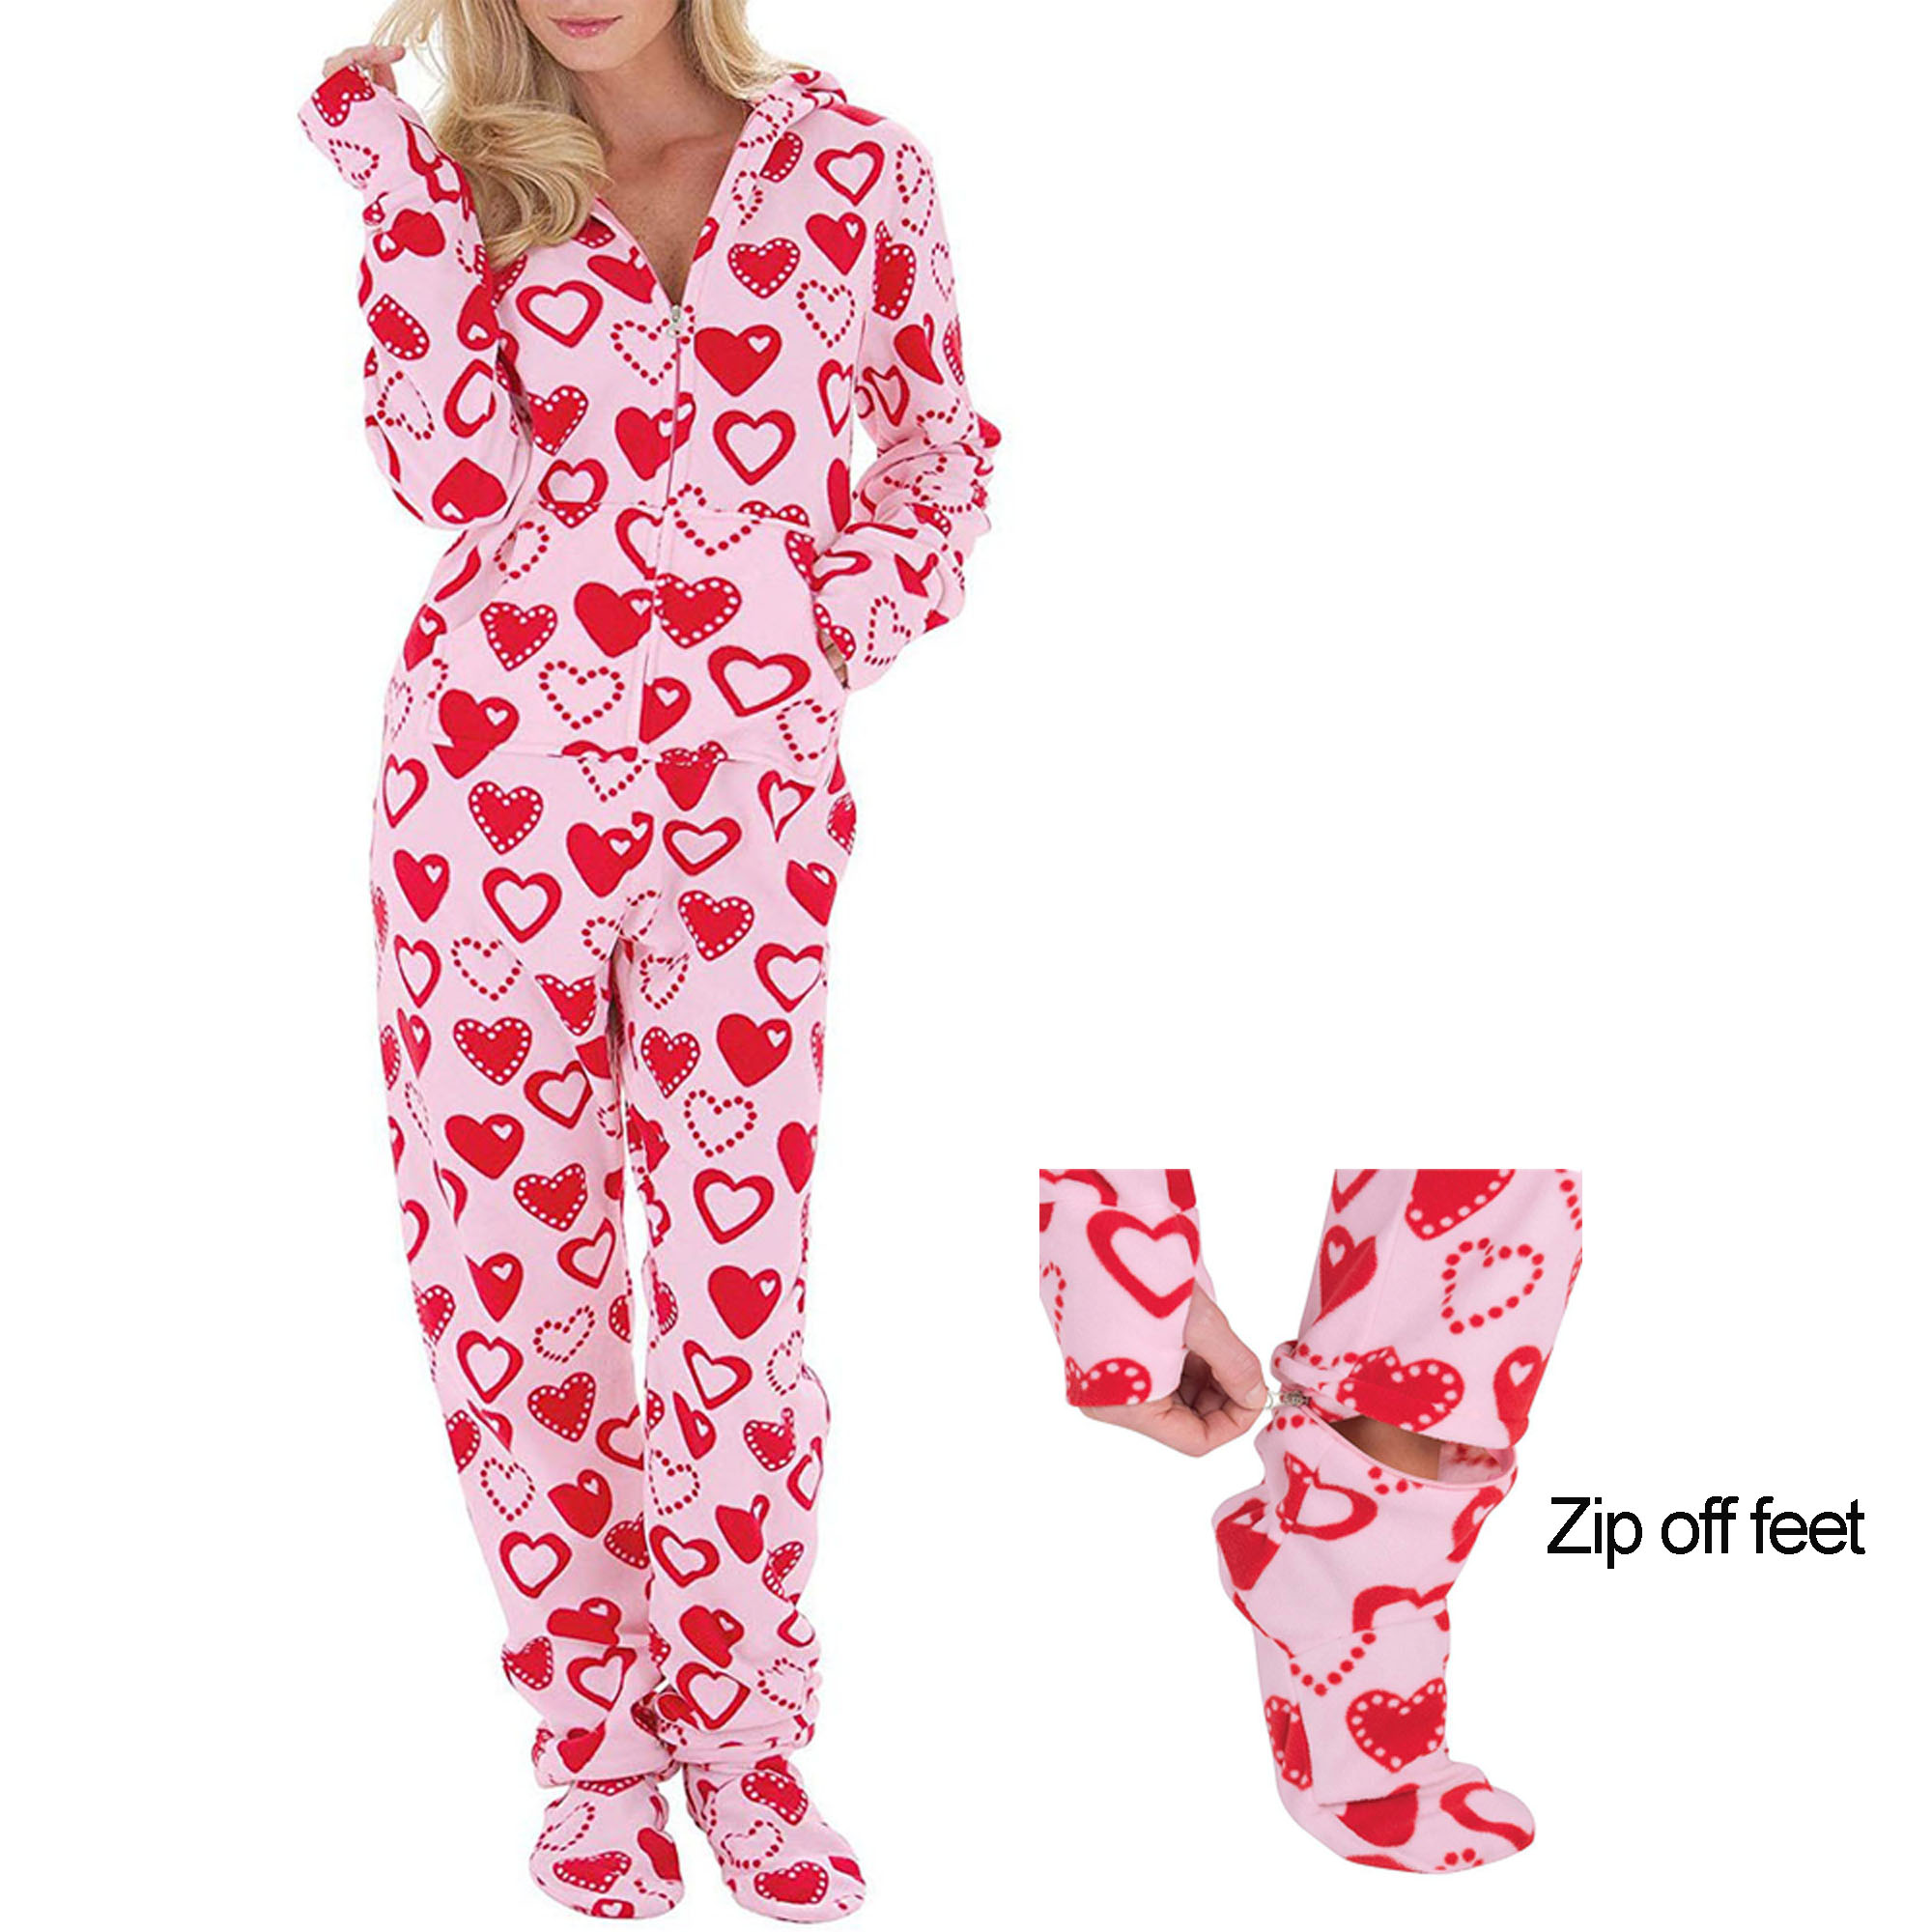 Women Fleece Printed Onesie Abdl Footed Sleeper Adult Footed Pajamas